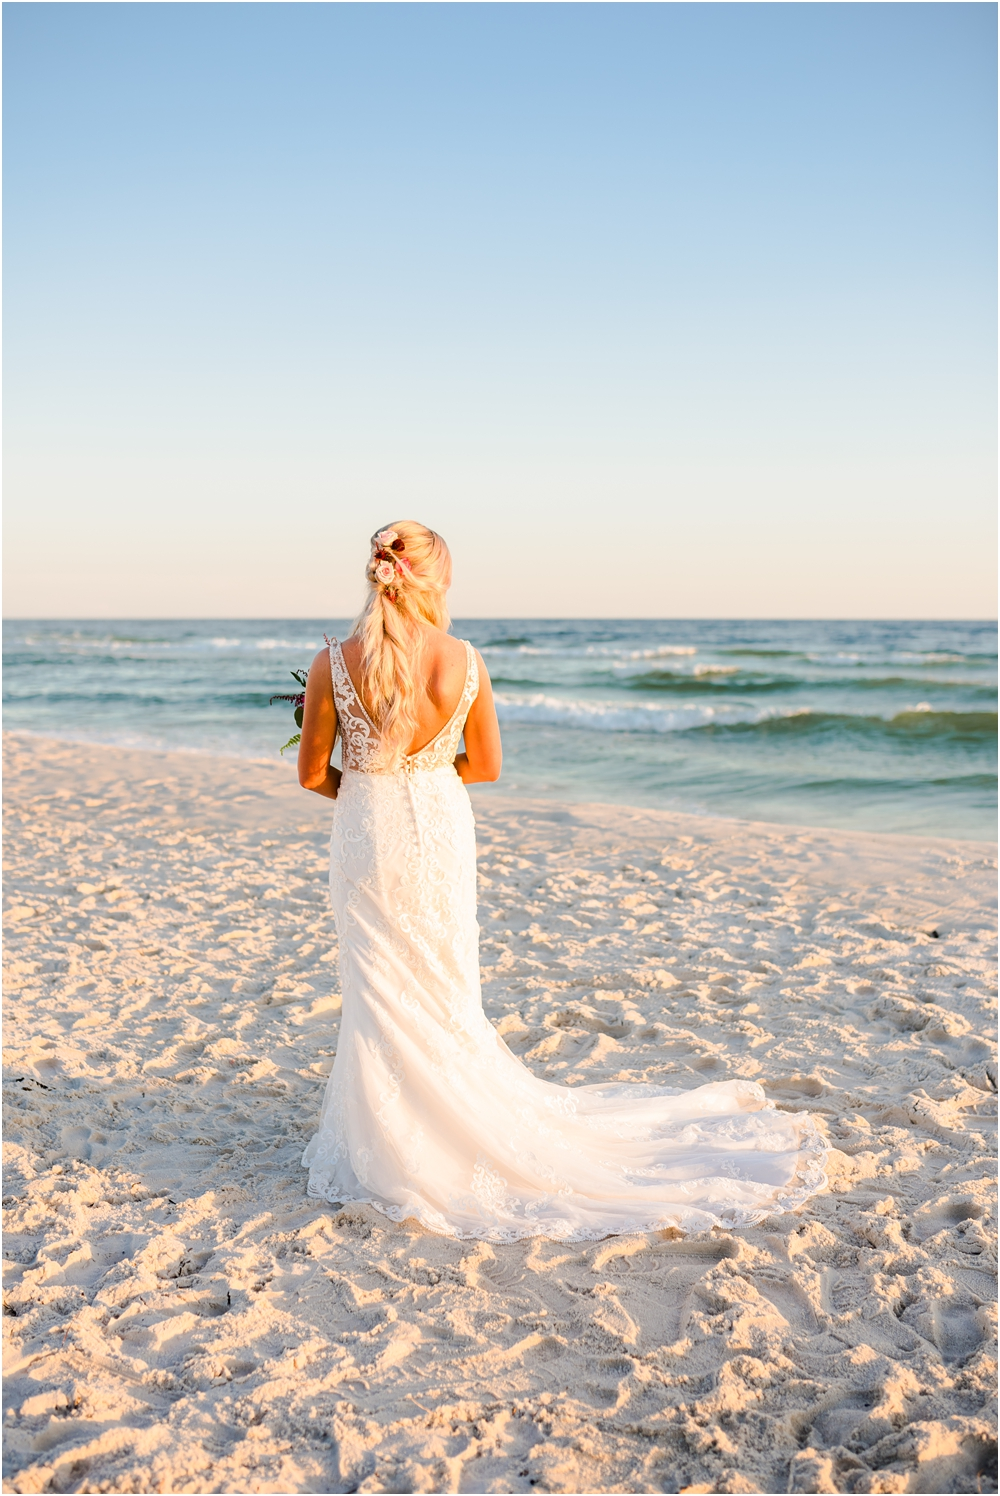 mcglothlin-wedding-kiersten-stevenson-photography-30a-panama-city-beach-dothan-tallahassee-(100-of-145).jpg